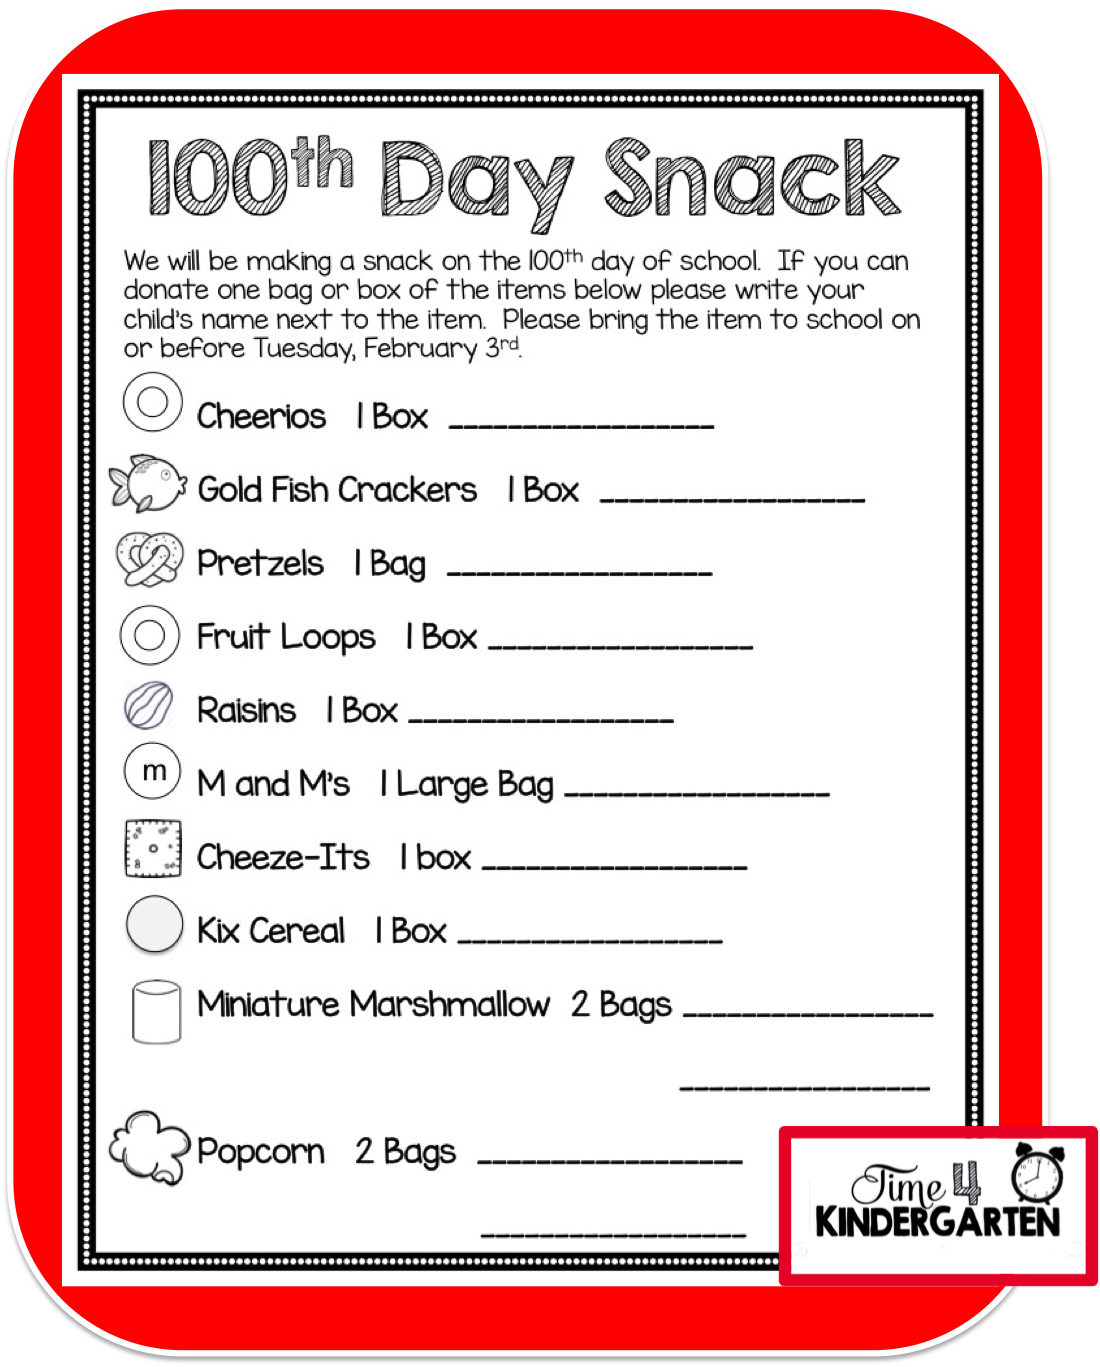 Time 4 Kindergarten How To Celebrate The 100th Day Of School